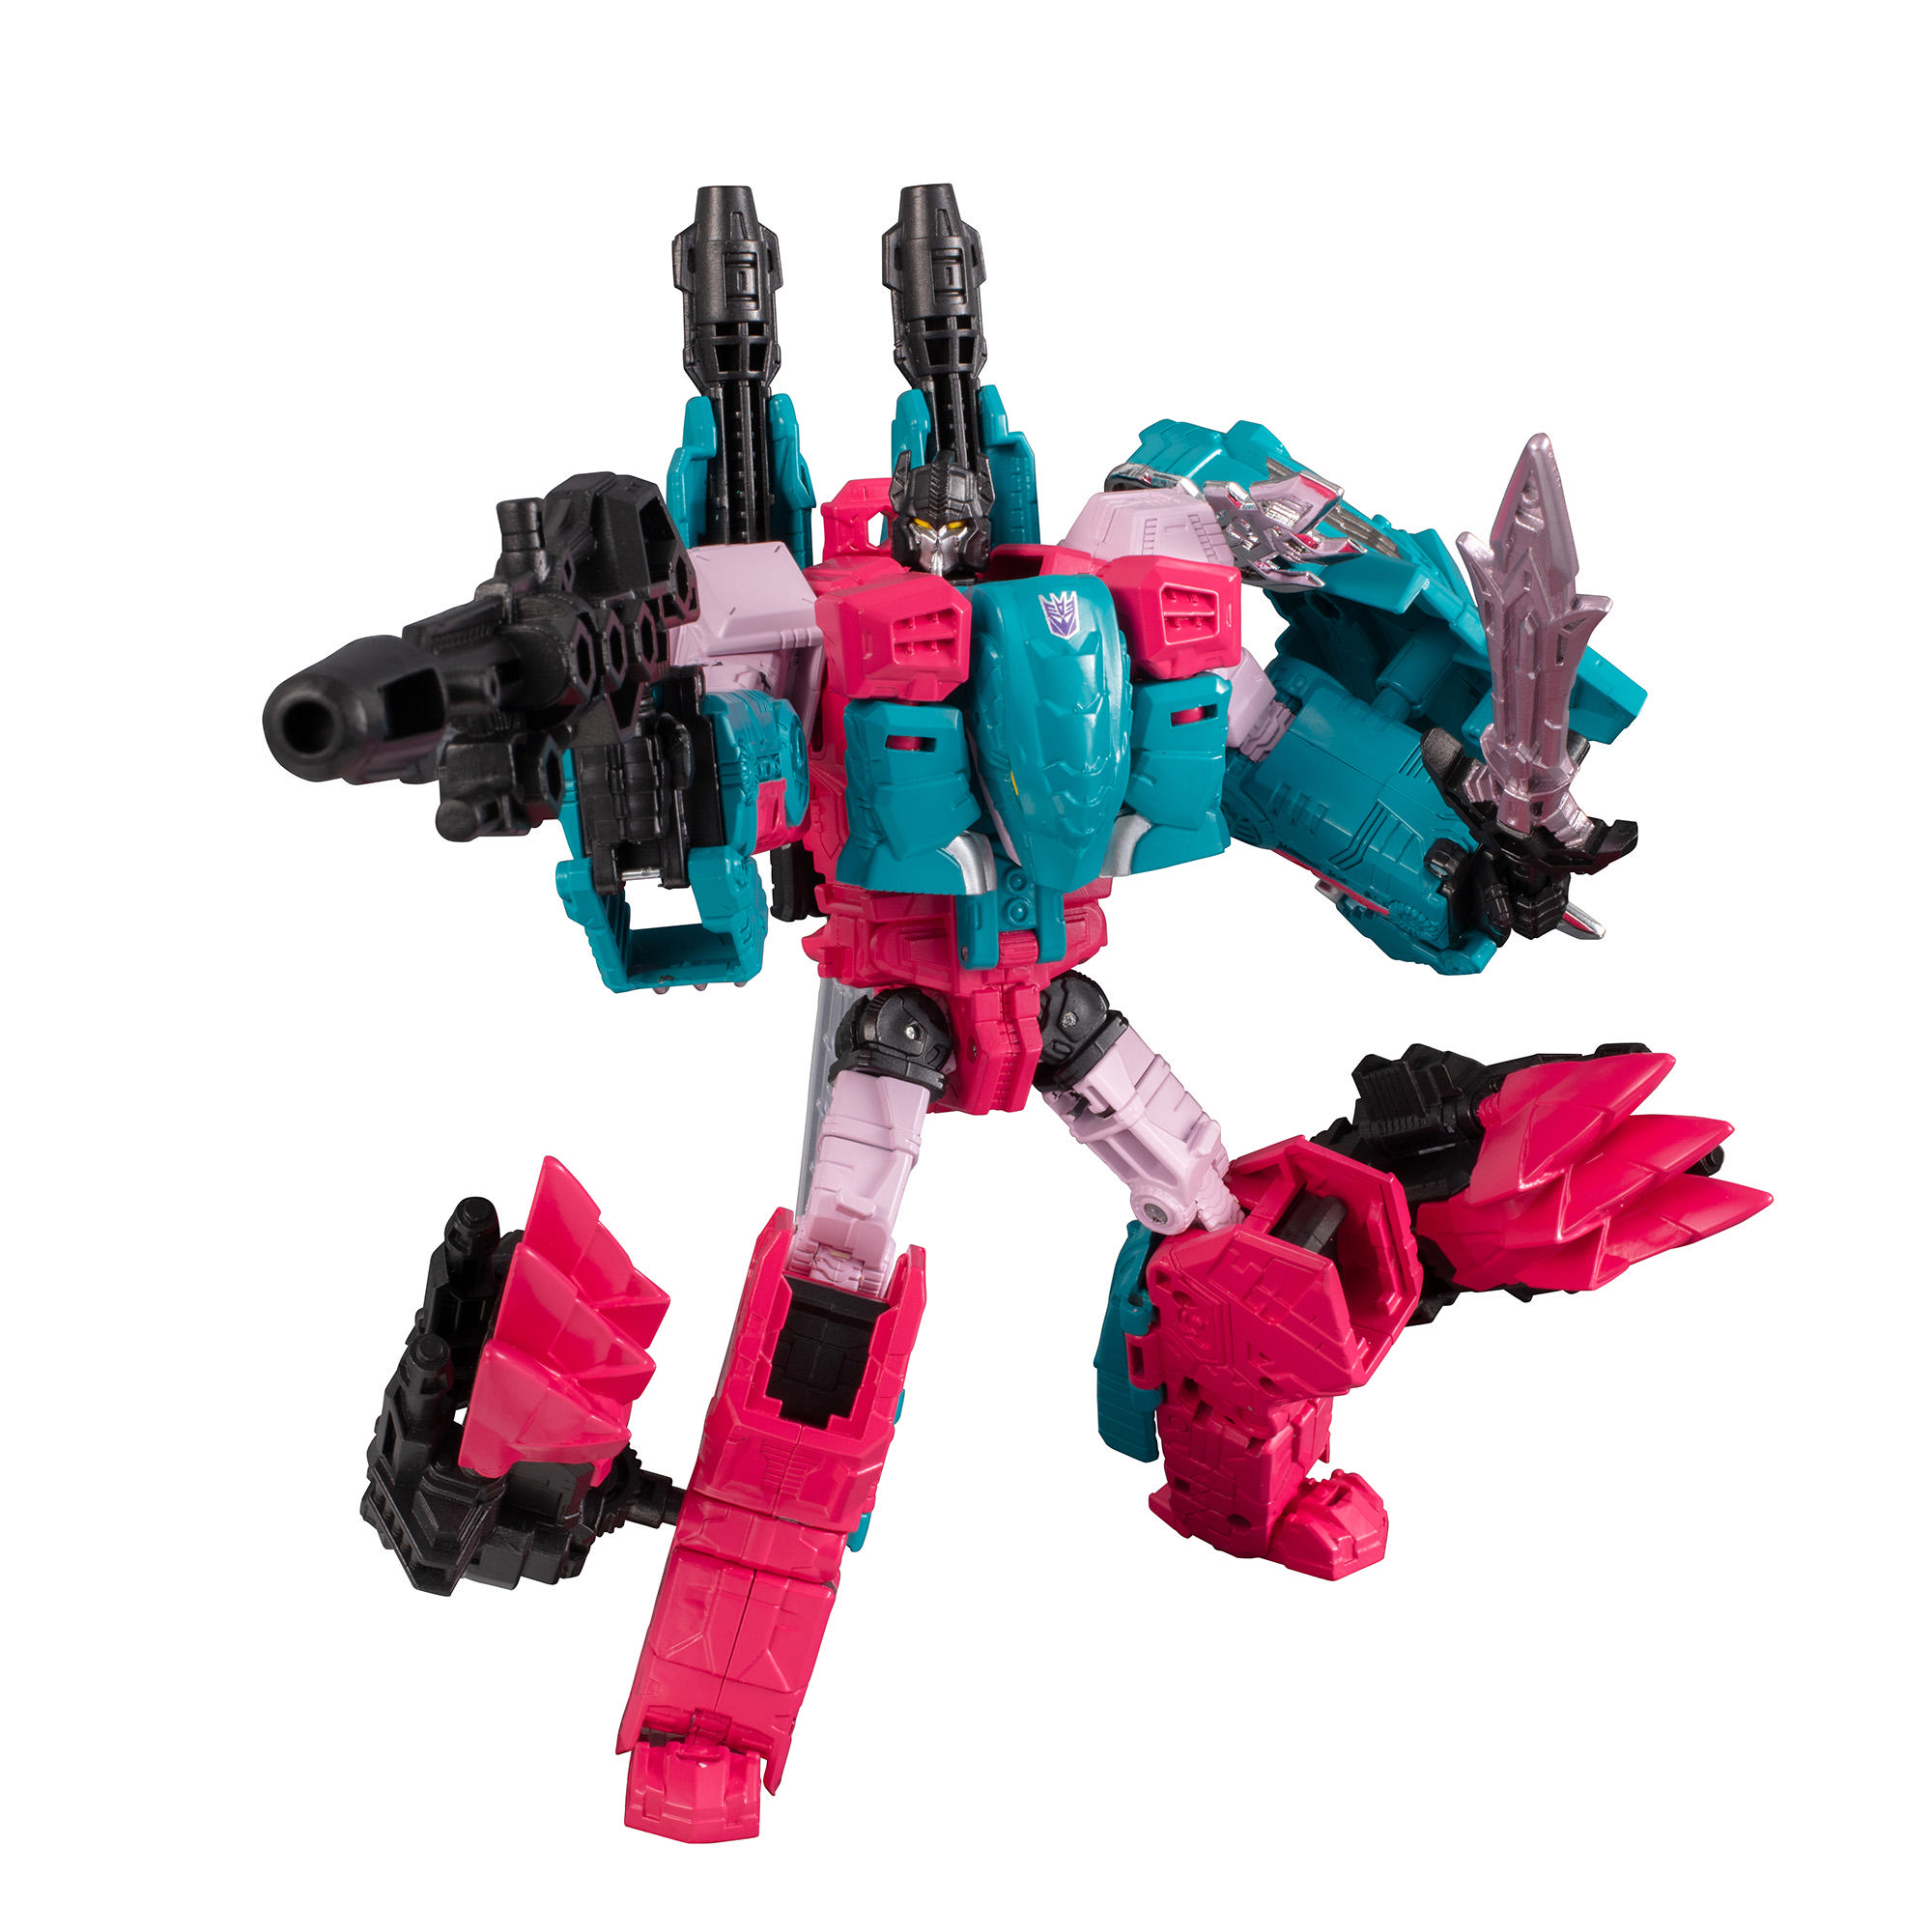 Transformers Generations Selects TT-GS03 Turtler (Snaptrap) [Authentic Takara Tomy Figure As Sold In Japan]